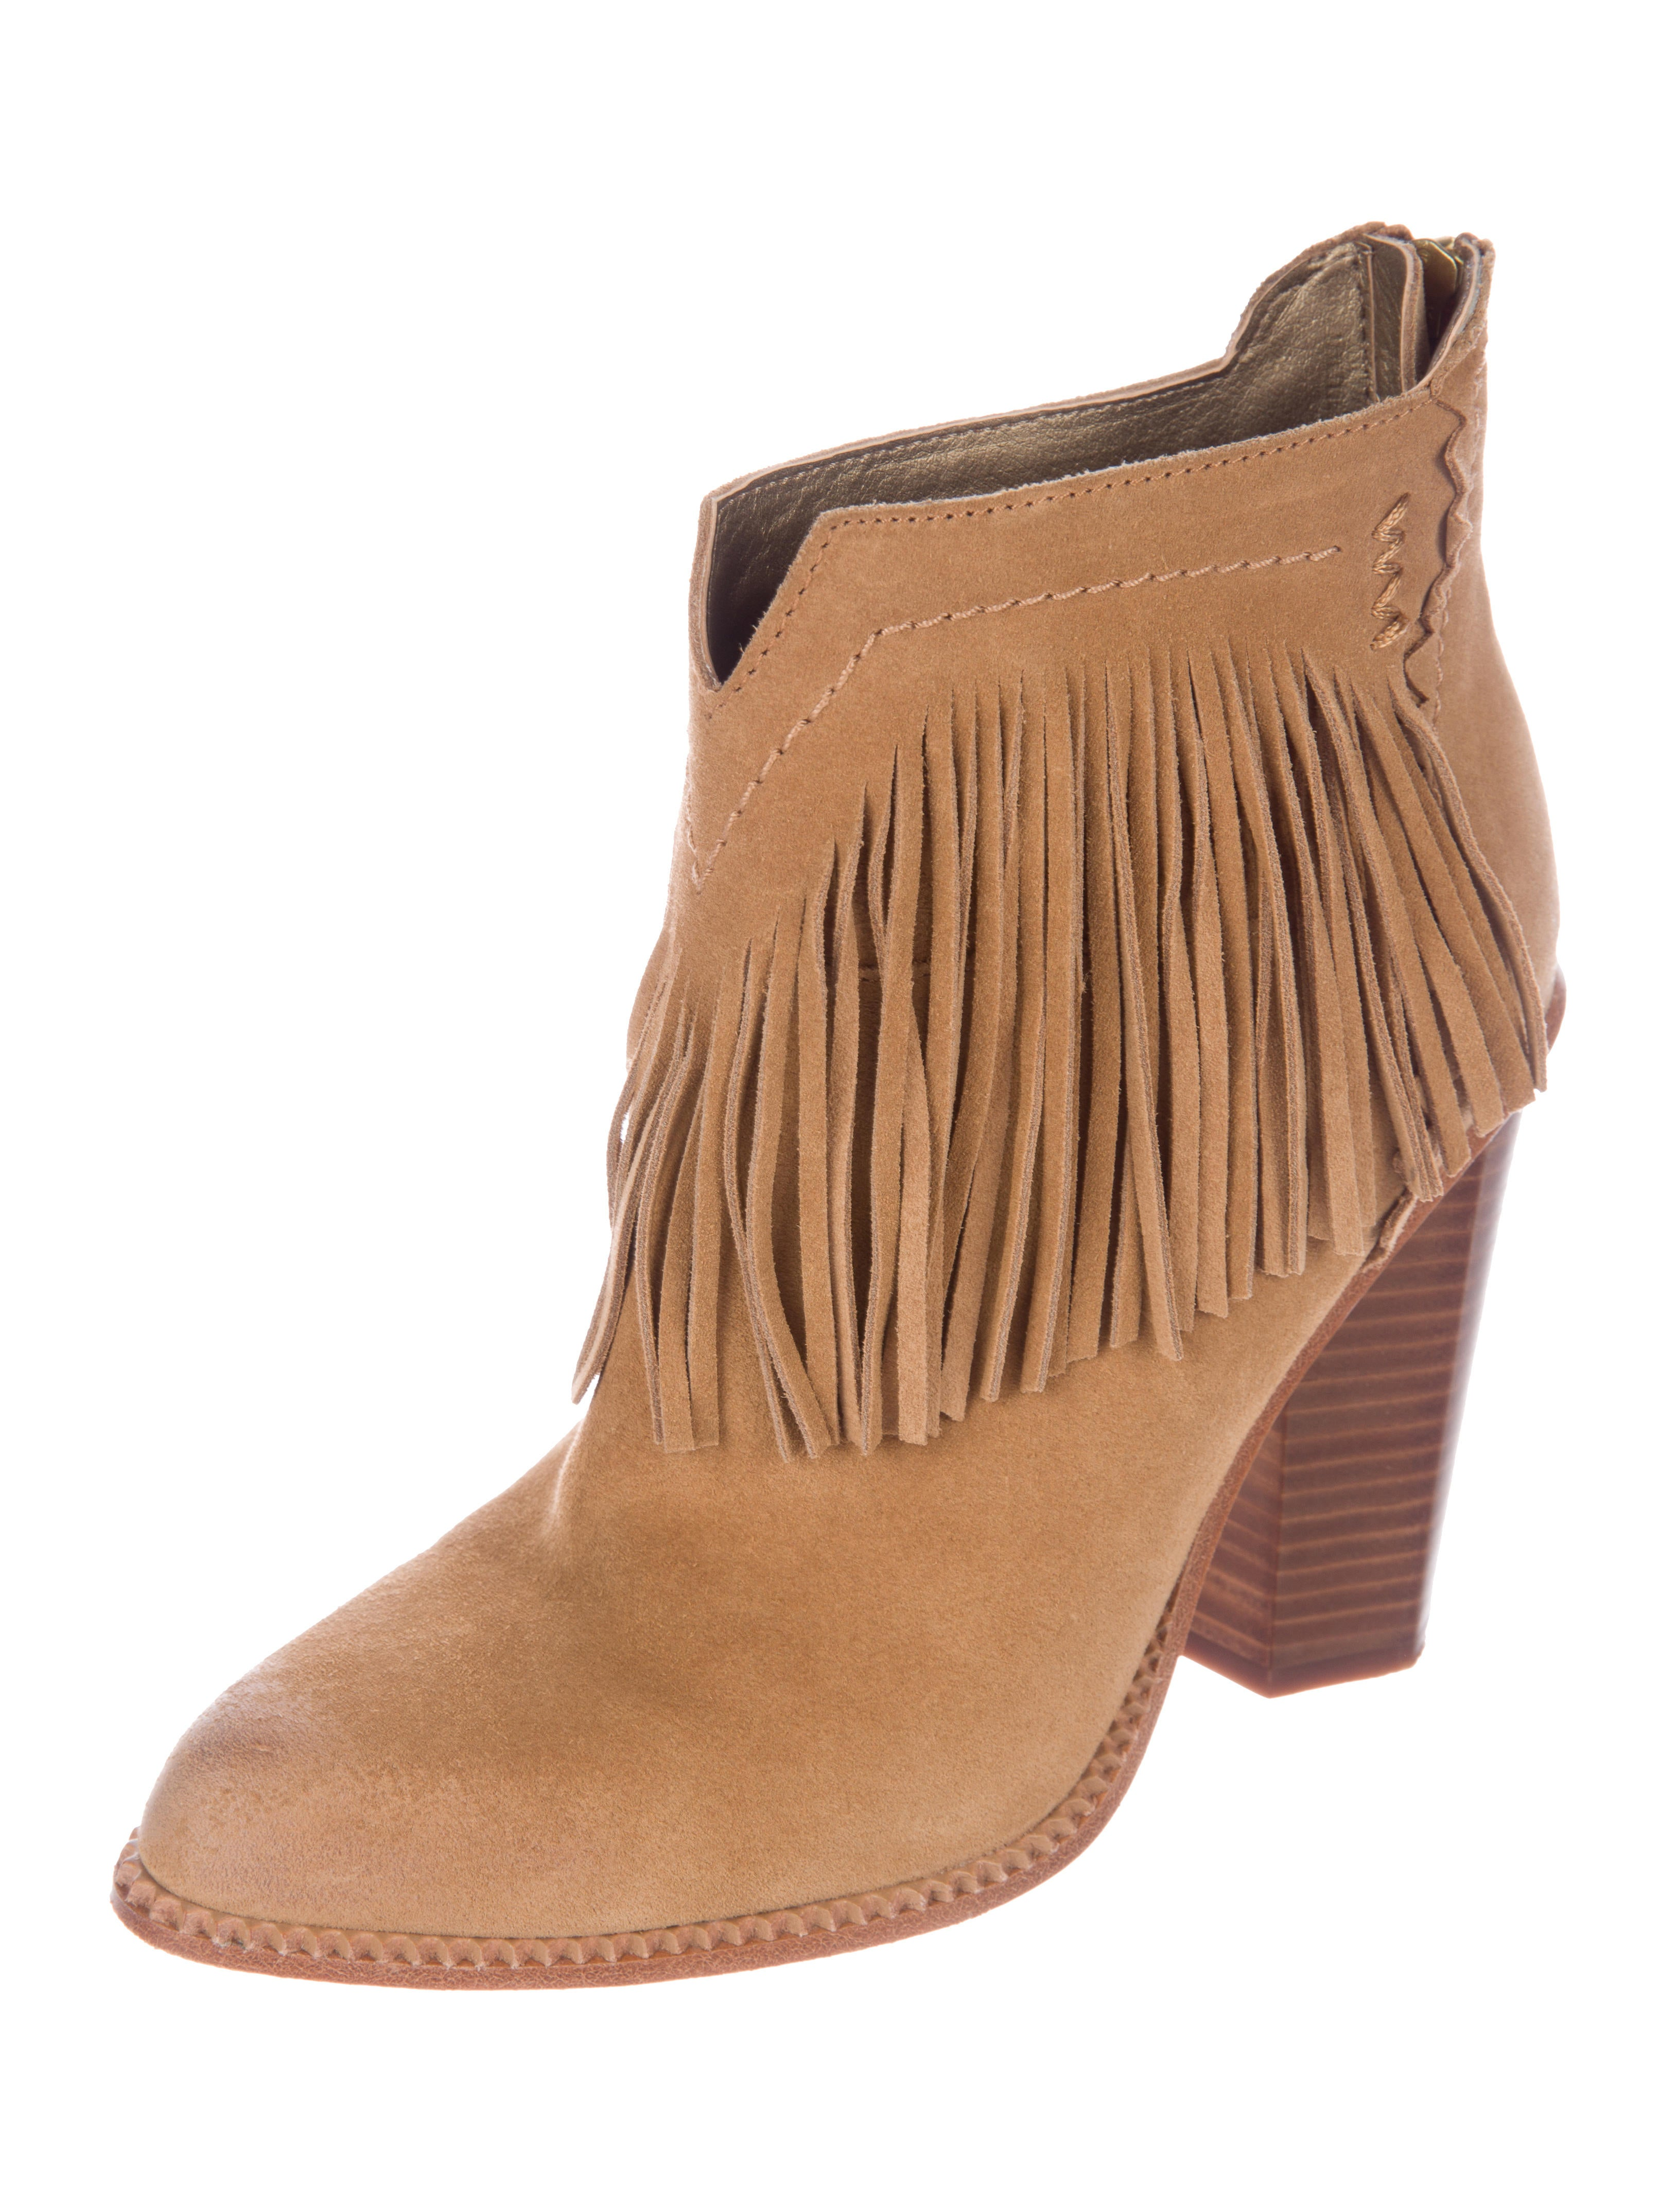 Inexpensive sale hot sale Cynthia Vincent Fringe Ankle Boots buy cheap clearance cheap online rYNsvi